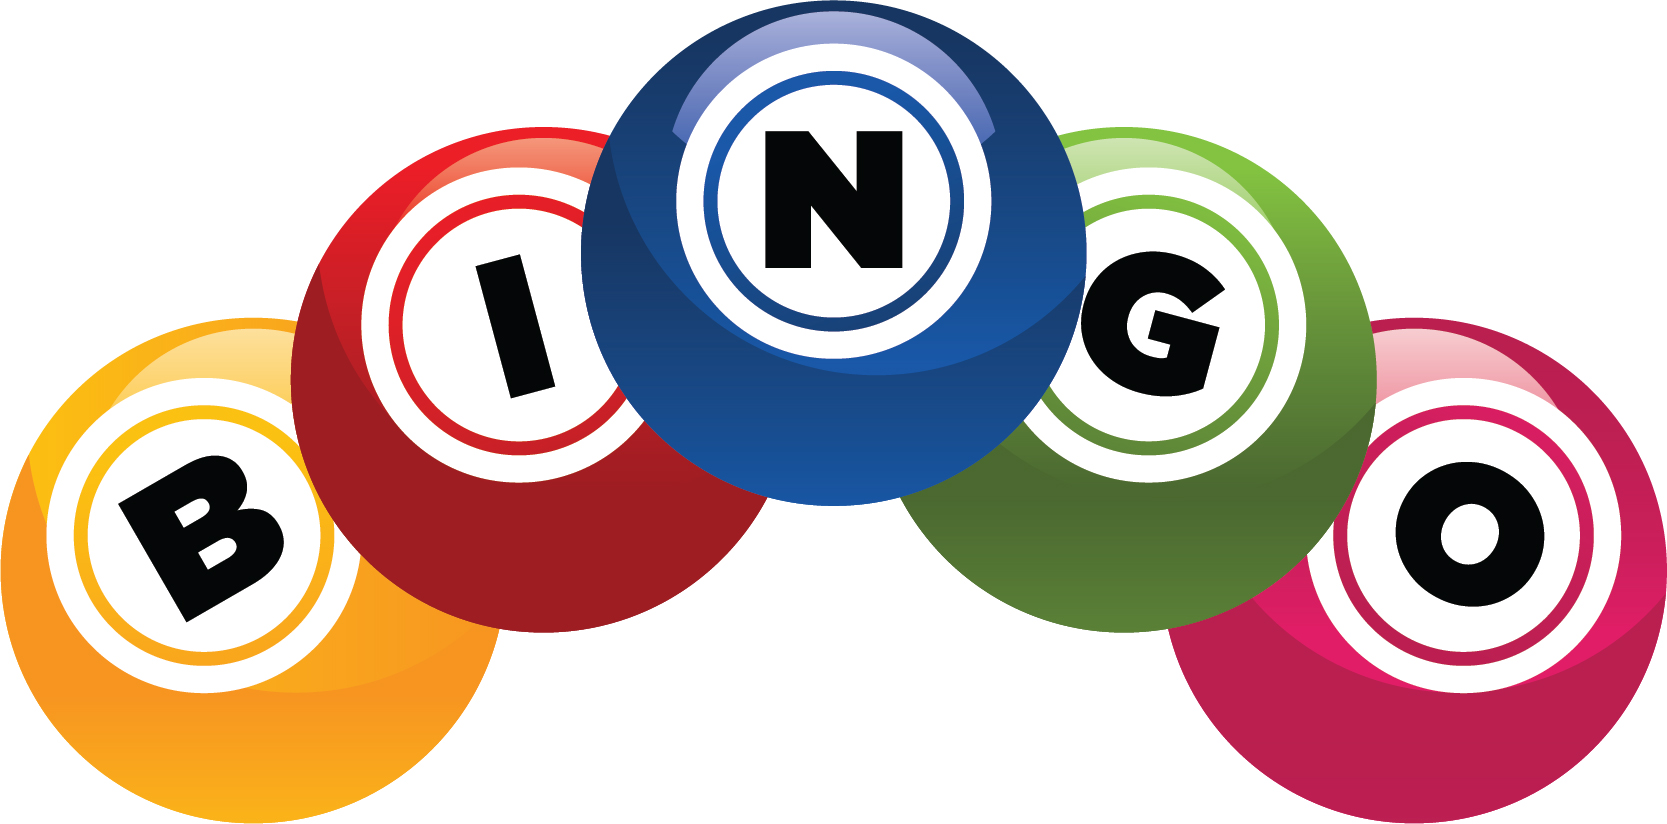 Bingo Clipart at GetDrawings.com | Free for personal use ...